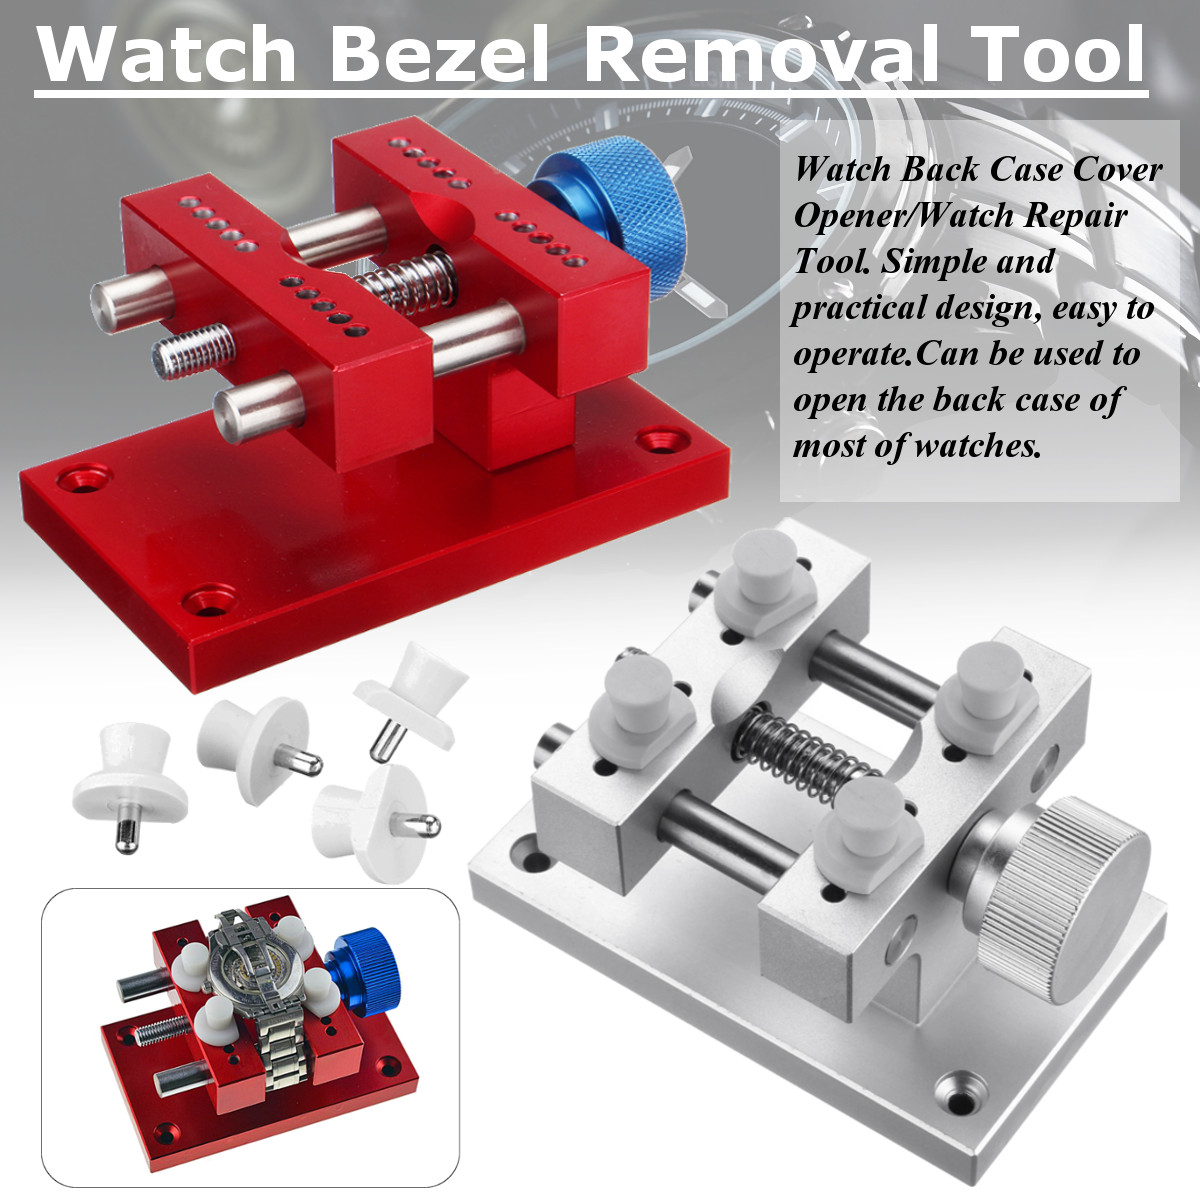 Watch Bezel Removal Tool Workbench Back Case Opener Tool for Rlx Tudo Max. 45mm